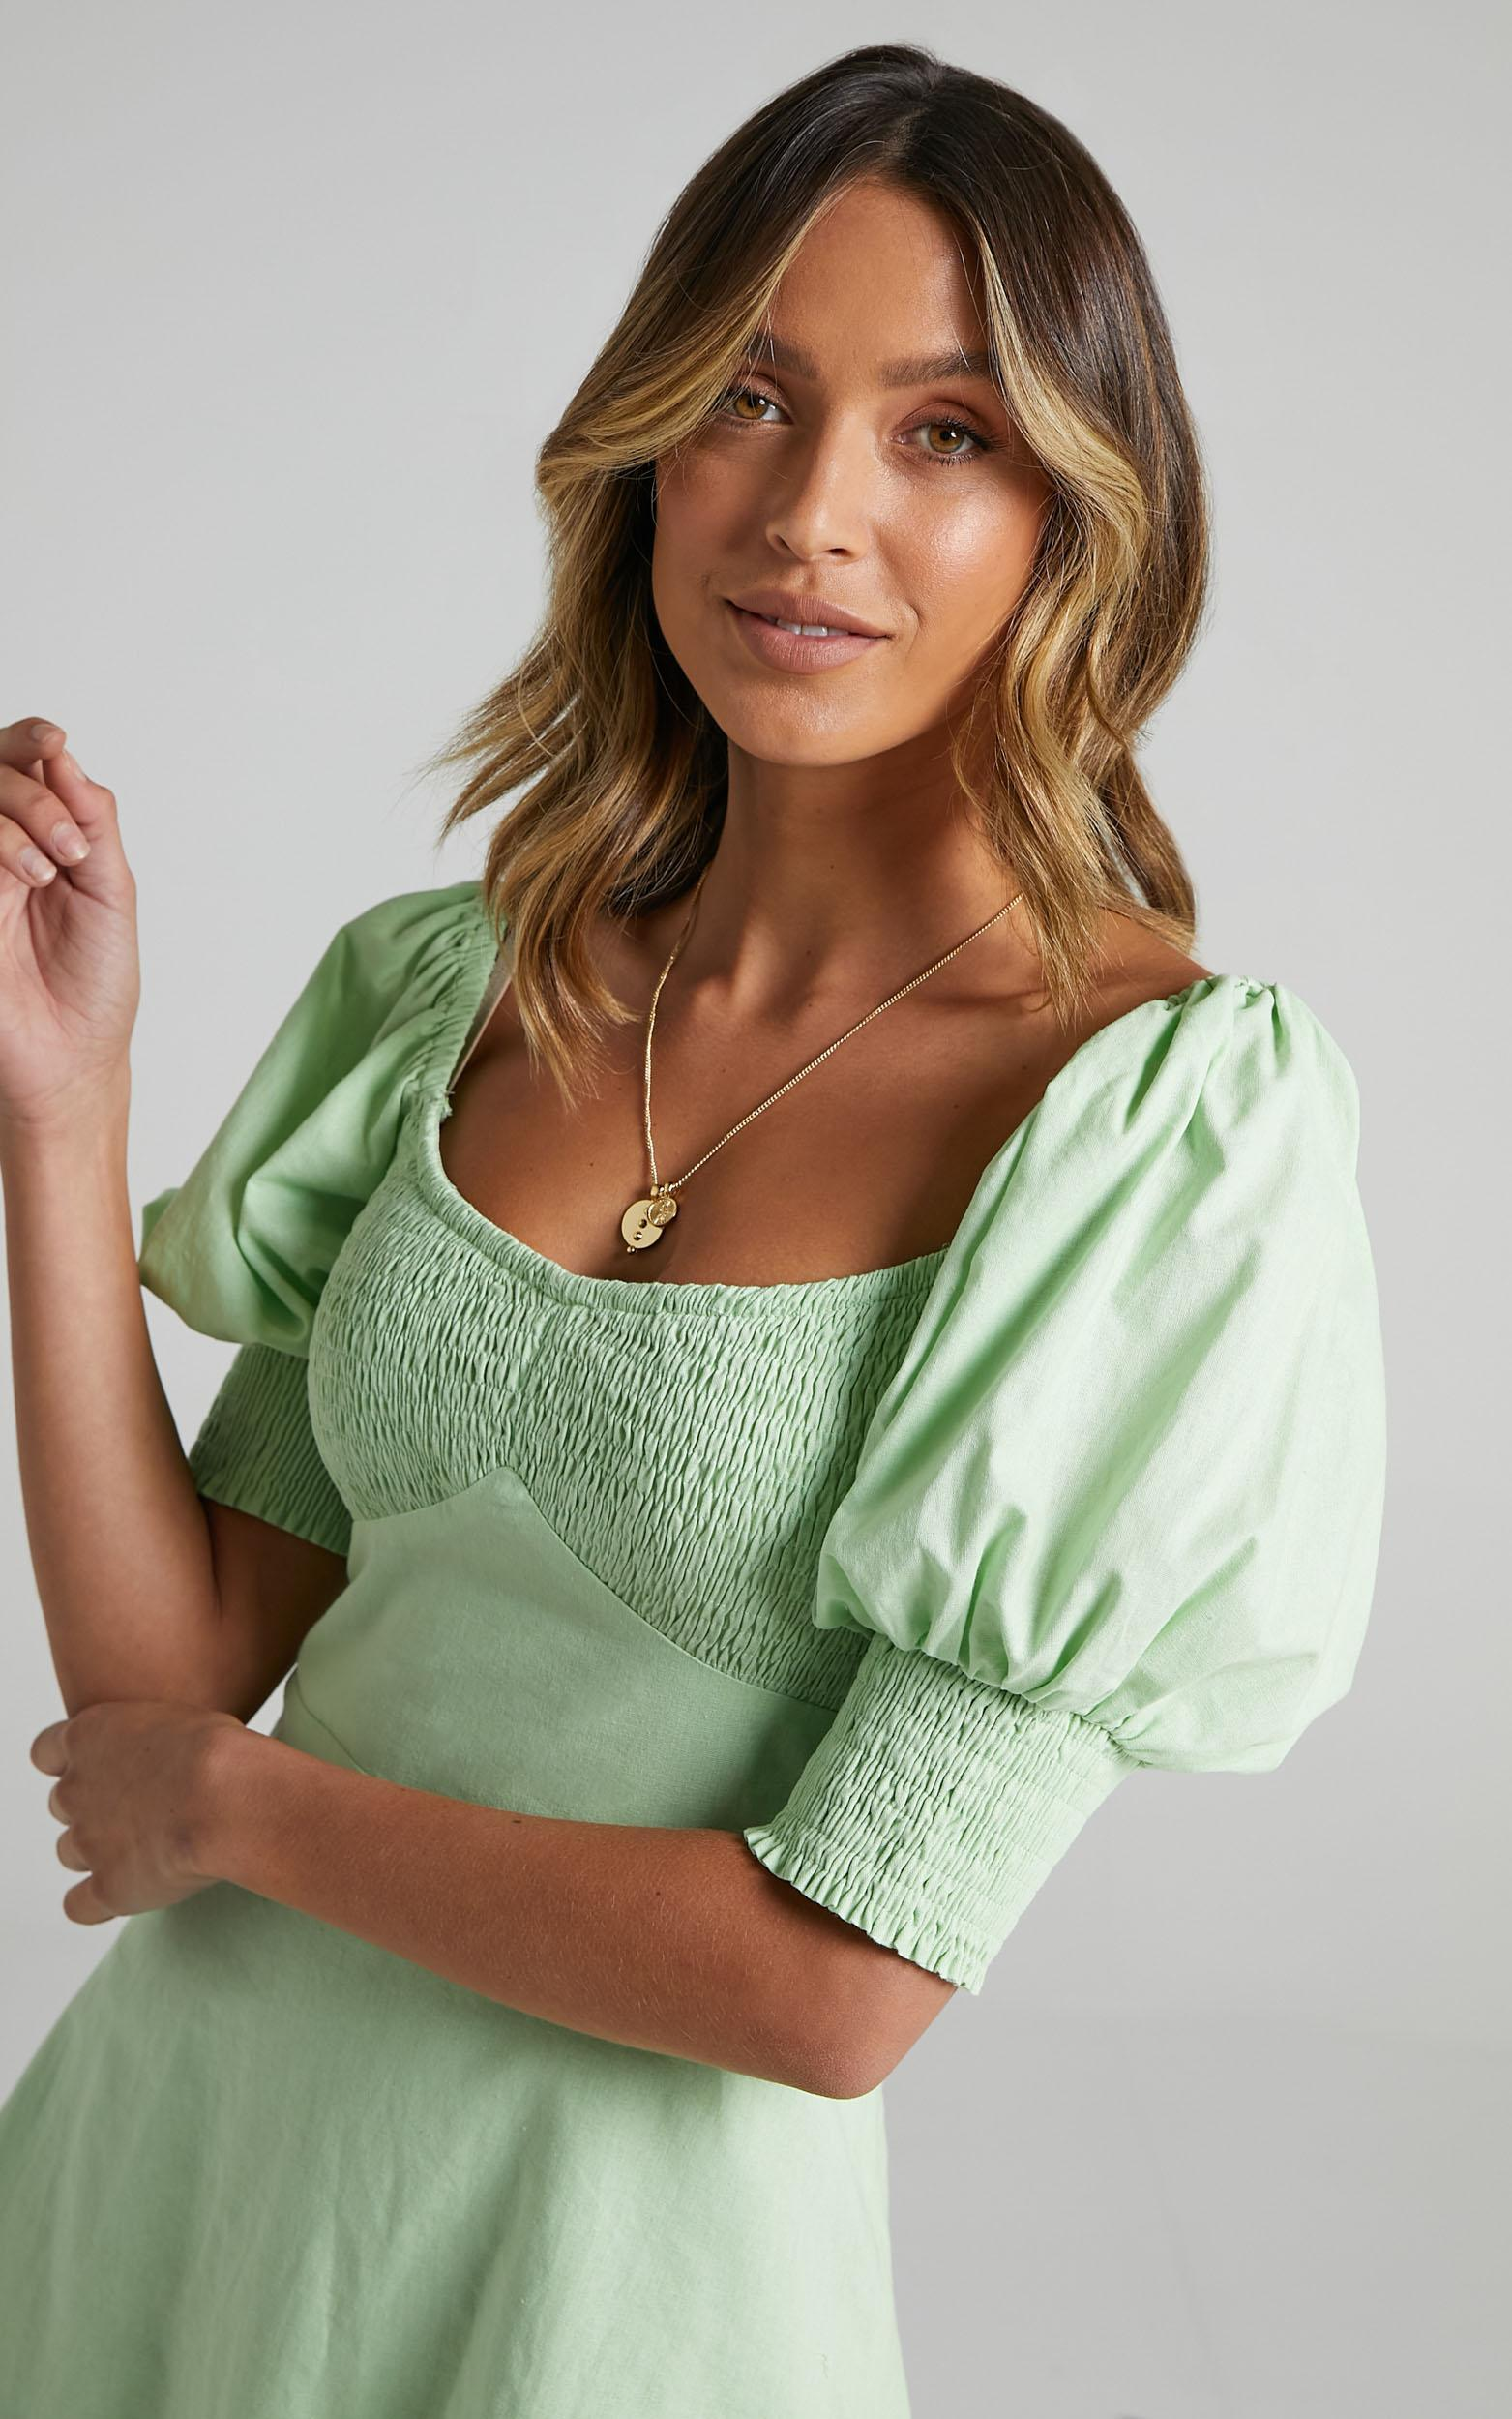 Invidia Dress in Apple Green - 6 (XS), Green, hi-res image number null